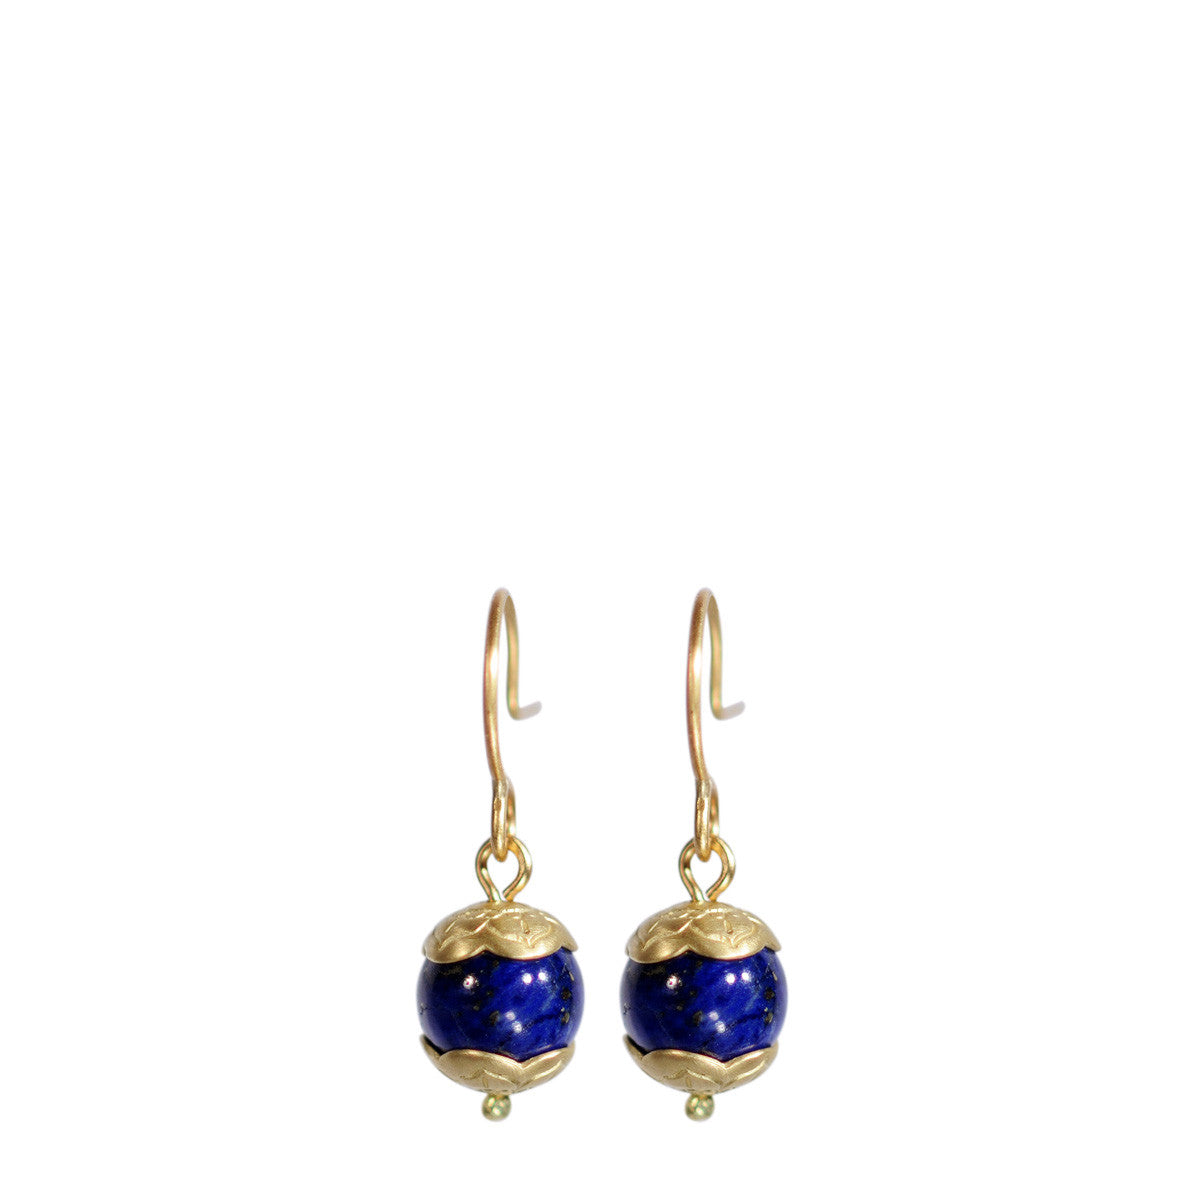 18K Gold Small Lapis Flower Cap Earrings